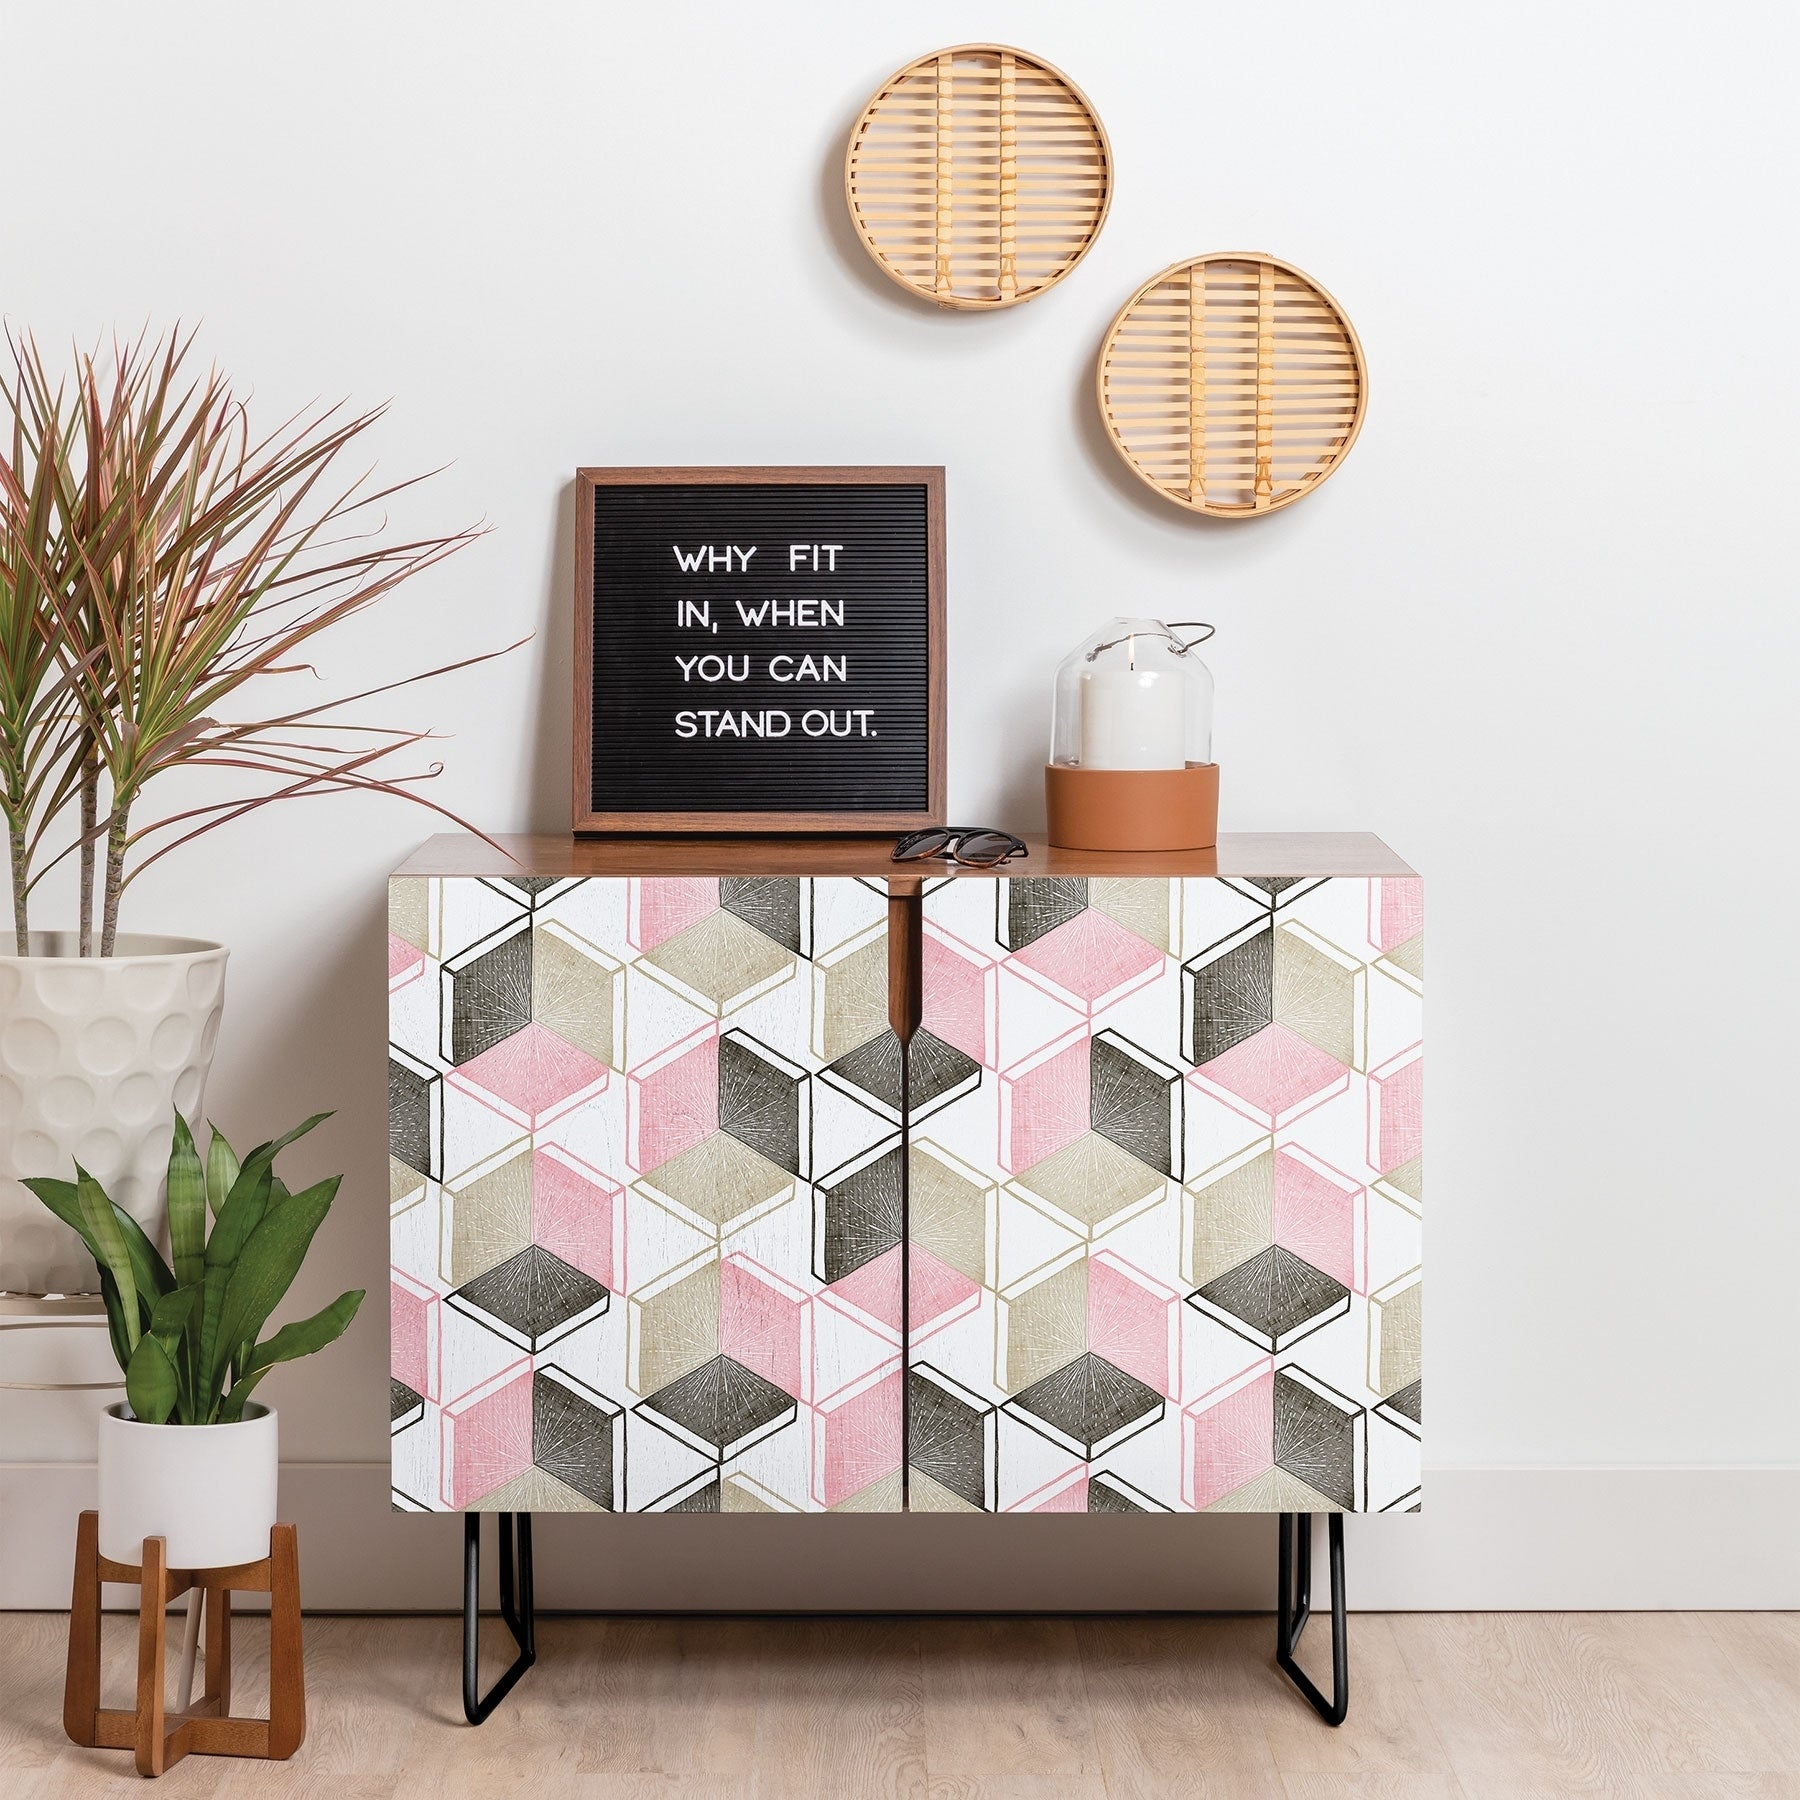 Deny Designs Geometric Shapes Credenza (Birch Or Walnut, 2 Leg Options) Intended For Geometric Shapes Credenzas (Photo 2 of 30)